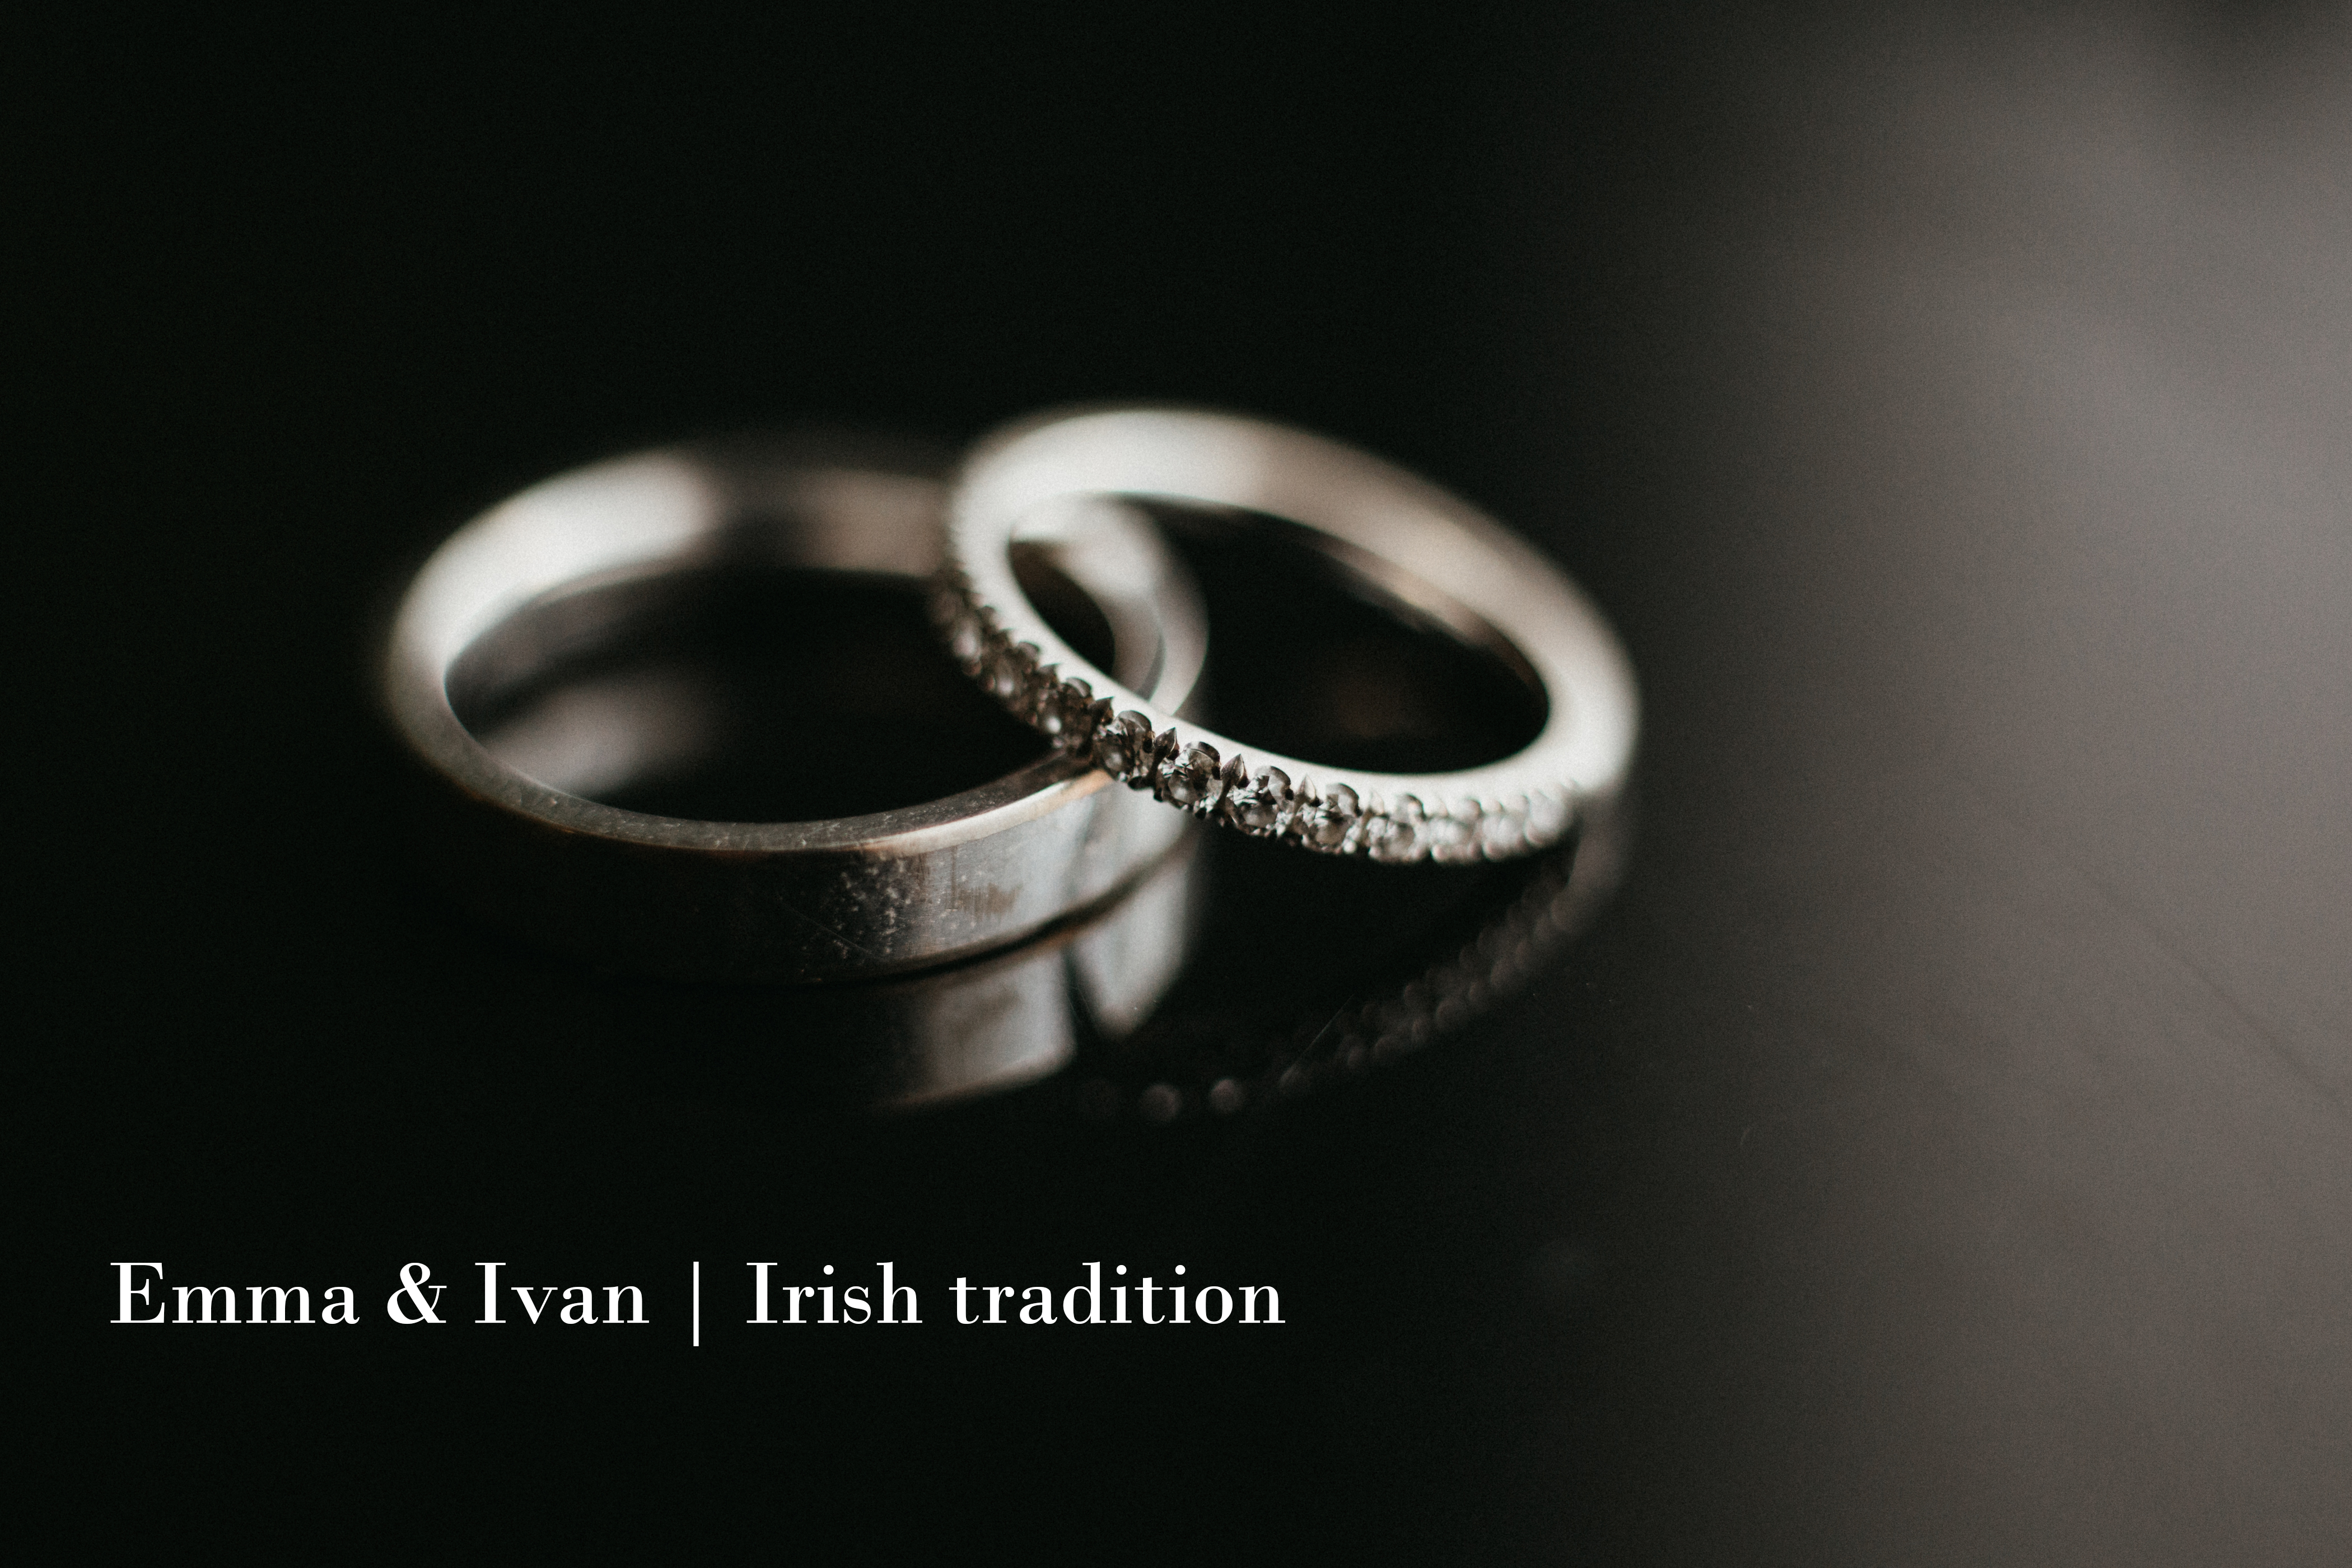 Emma & Ivan | Irish tradition